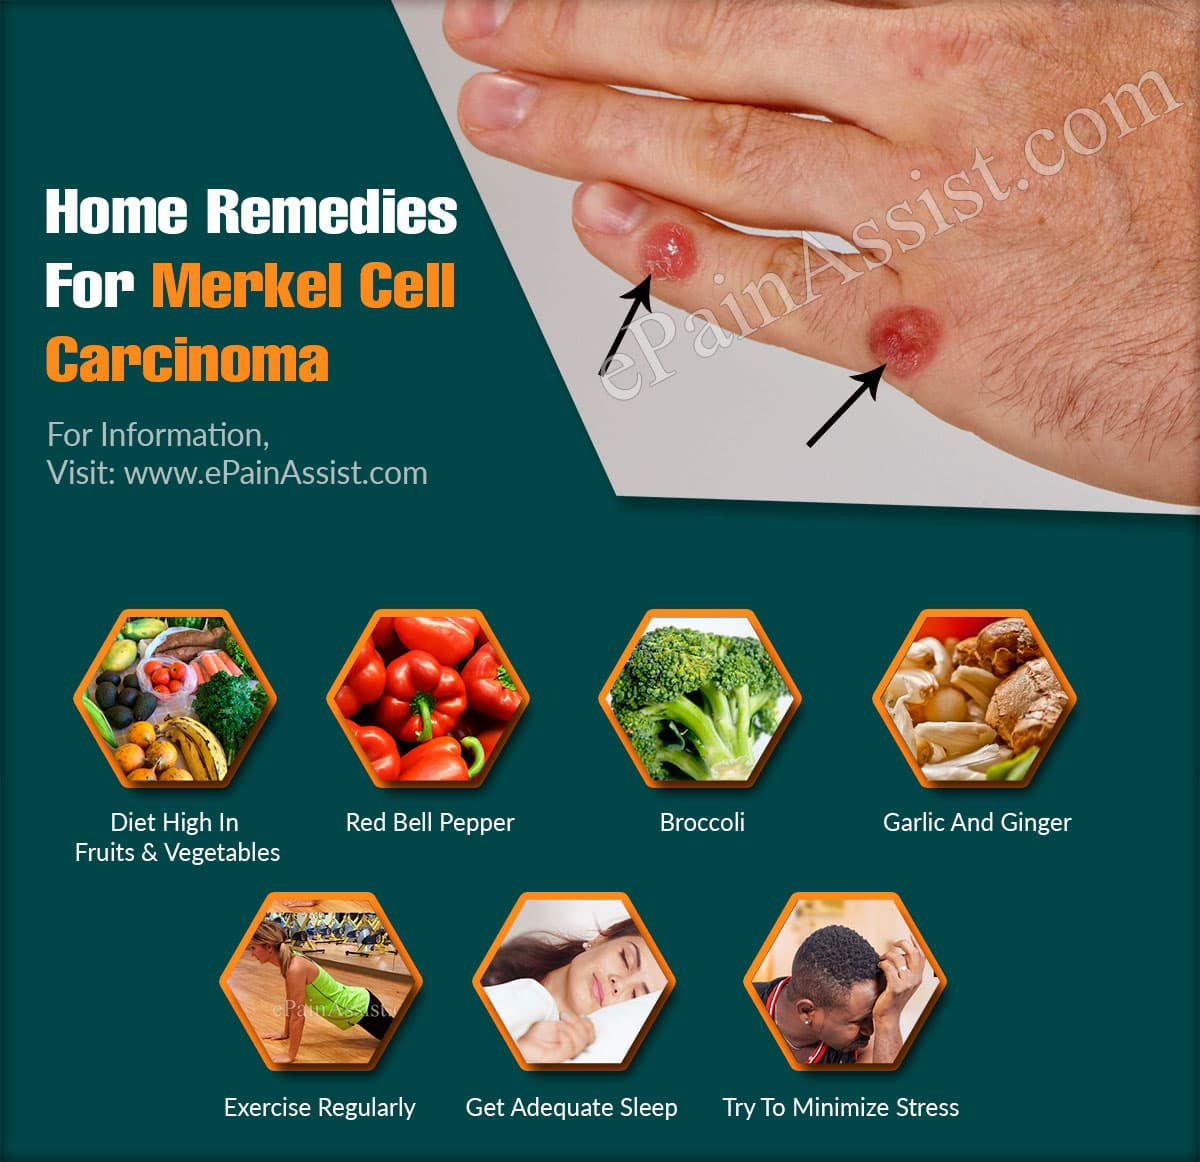 Home Remedies For Merkel Cell Carcinoma